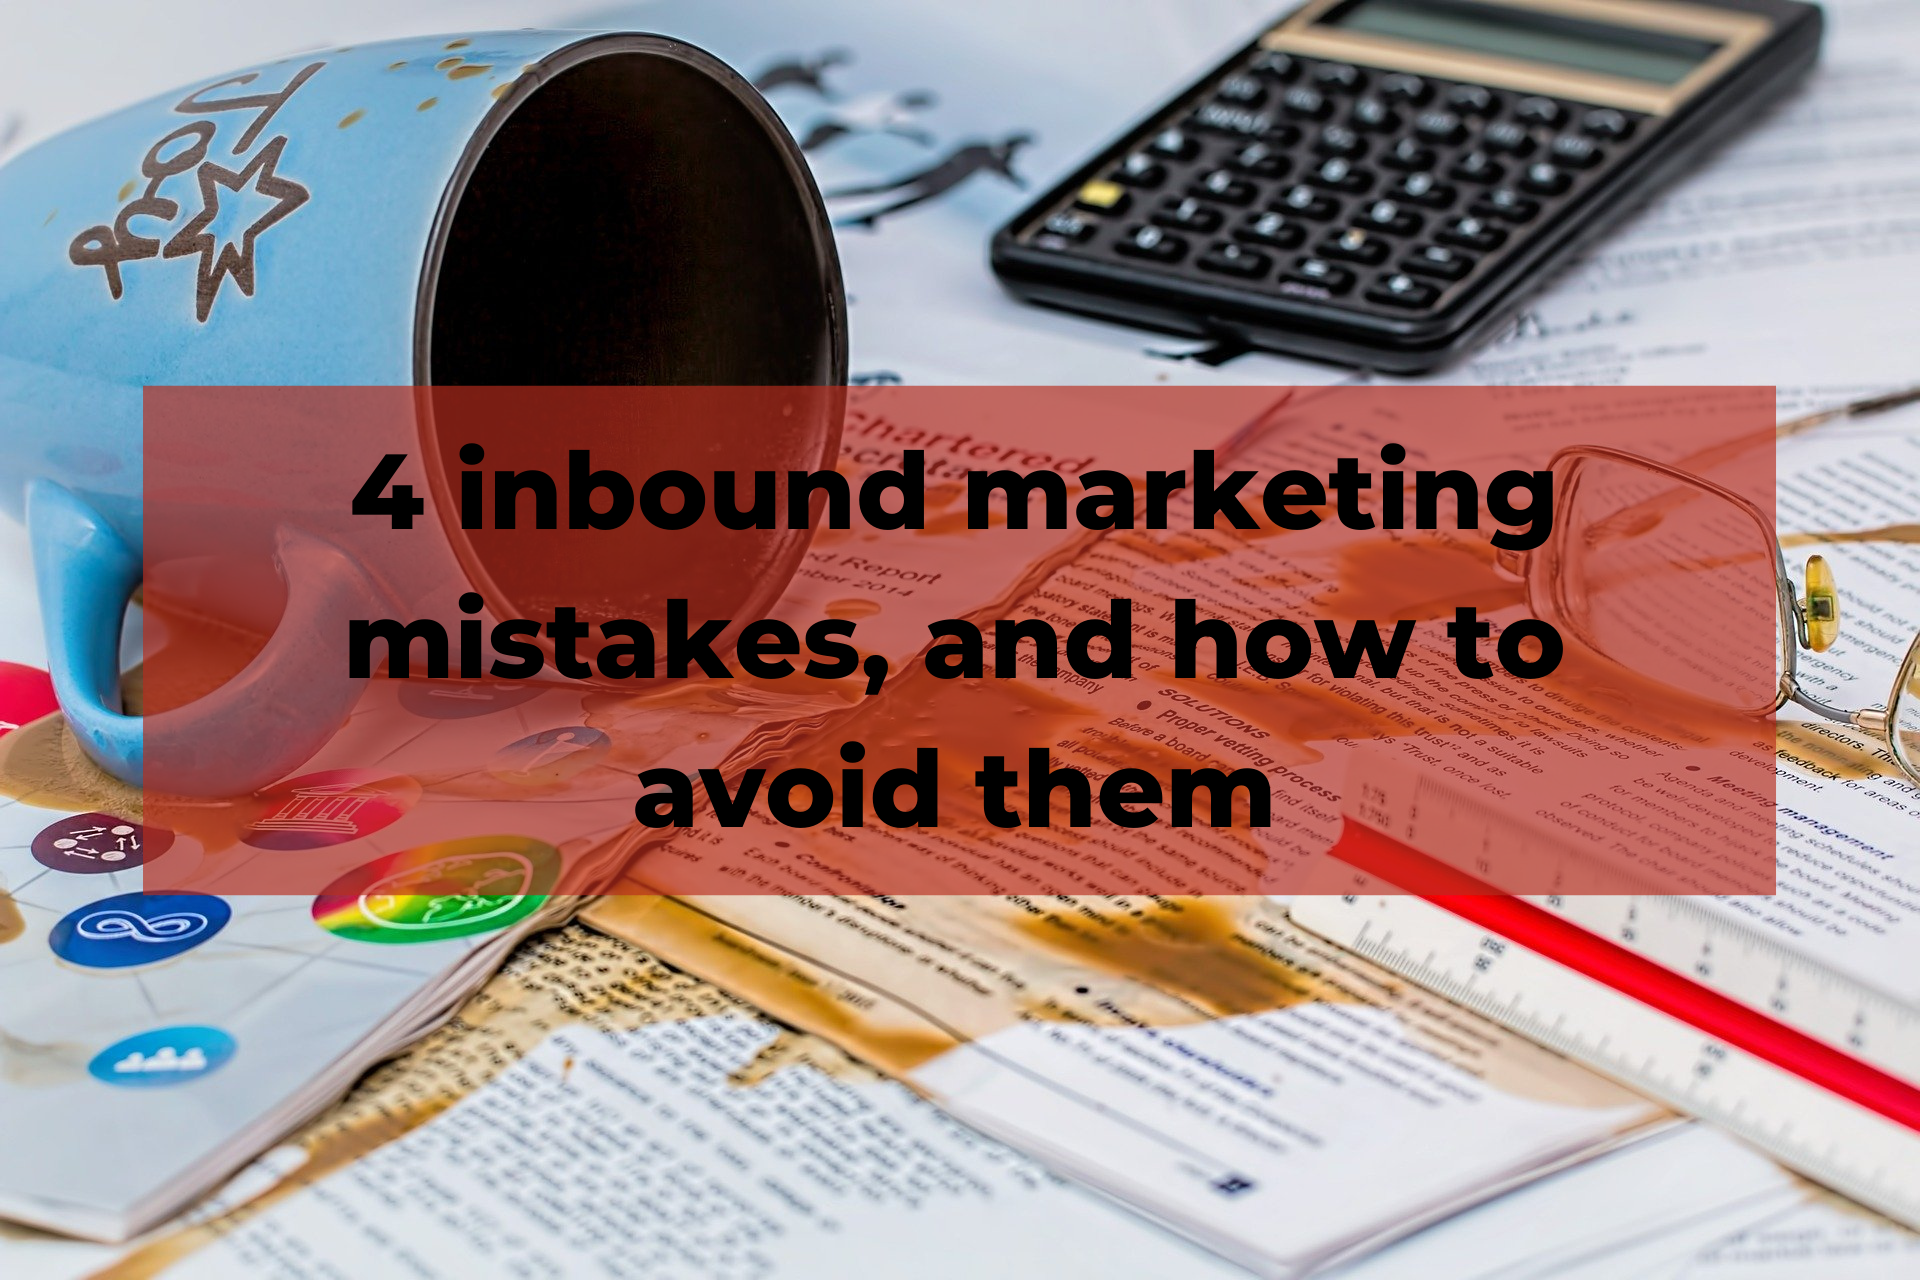 4 inbound marketing mistakes, and how to avoid them